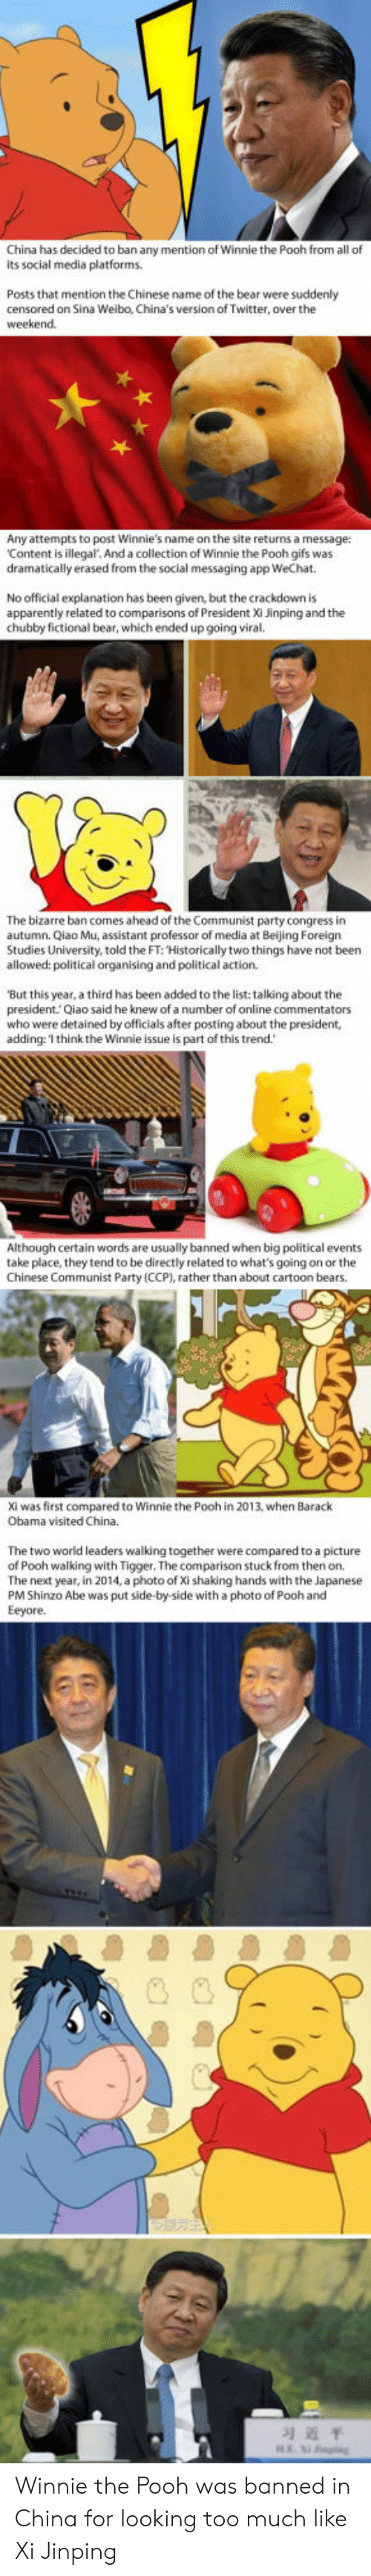 Tigger: China has decided to ban any mention of Winnie the Pooh from all of  its social media platforms  Posts that mention the Chinese name of the bear were suddenly  censored on Sina Weibo, China's version of Twitter, over the  Any attempts to post Winnie's name on the site returns a message:  Content is illegal. And a collection of Winnie the Pooh gifs was  dramatically erased from the social messaging app WeChat  No official explanation has been given, but the crackdown is  apparently related to comparisons of President Xi Jinping and the  chubby fictional bear, which ended up going viral.  The bizarre ban comes ahead of the Communist party congress in  autumn. Qiao Mu, assistant professor of media at Beijing Foreign  Studies University, told the FT: Historically two things have not been  allowed: political organising and political action  'But this year, a third has been added to the list: talking about the  president.Qiao said he knew of a number of online commentators  who were detained by officials after posting about the president,  adding:'I think the Winnie issue is part of this trend.  Although certain words are usually banned when big political events  take place, they tend to be directly related to what's going on or the  Chinese Communist Party (CCP), rather than about cartoon bears.  Xi was first compared to Winnie the Pooh in 2013, when Barack  Obama visited China.  The two world leaders walking together were compared to a picture  of Pooh walking with Tigger. The comparison stuck from then on.  The next year, in 2014, a photo of Xi shaking hands with the Japanese  PM Shinzo Abe was put side-by-side with a photo of Pooh and  Eeyore.  习近平 Winnie the Pooh was banned in China for looking too much like Xi Jinping